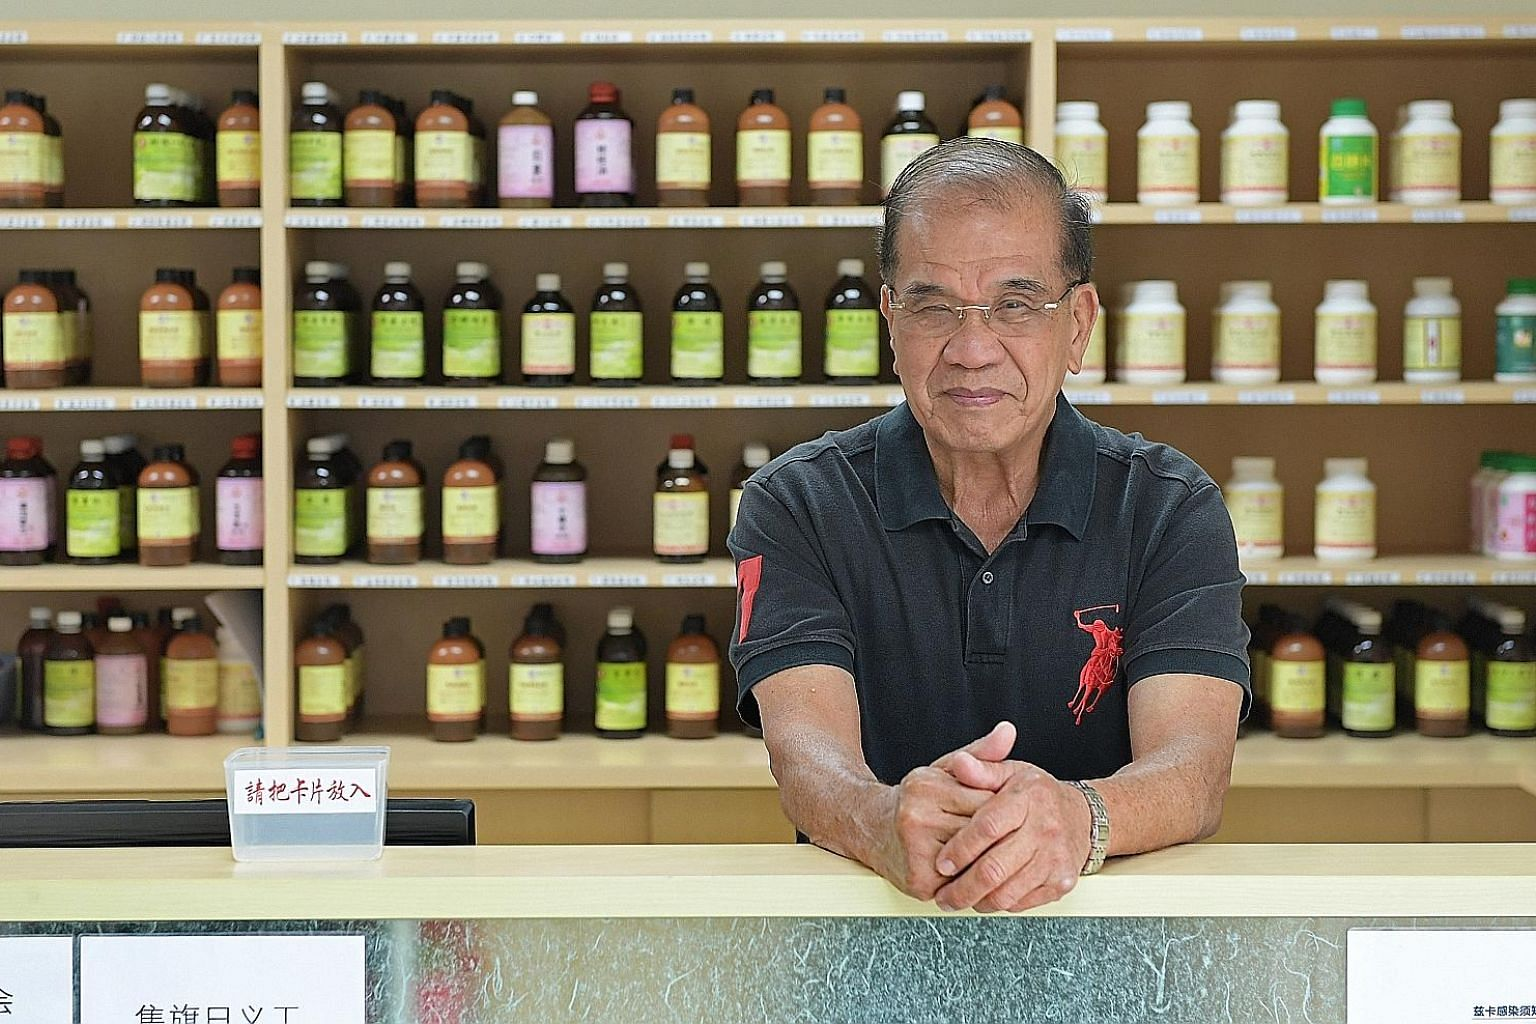 Mr Lim founded Afterlife Memorial Service in late 2012 after he helped with the funeral arrangements of a man in his 80s and a 10-year-old boy.